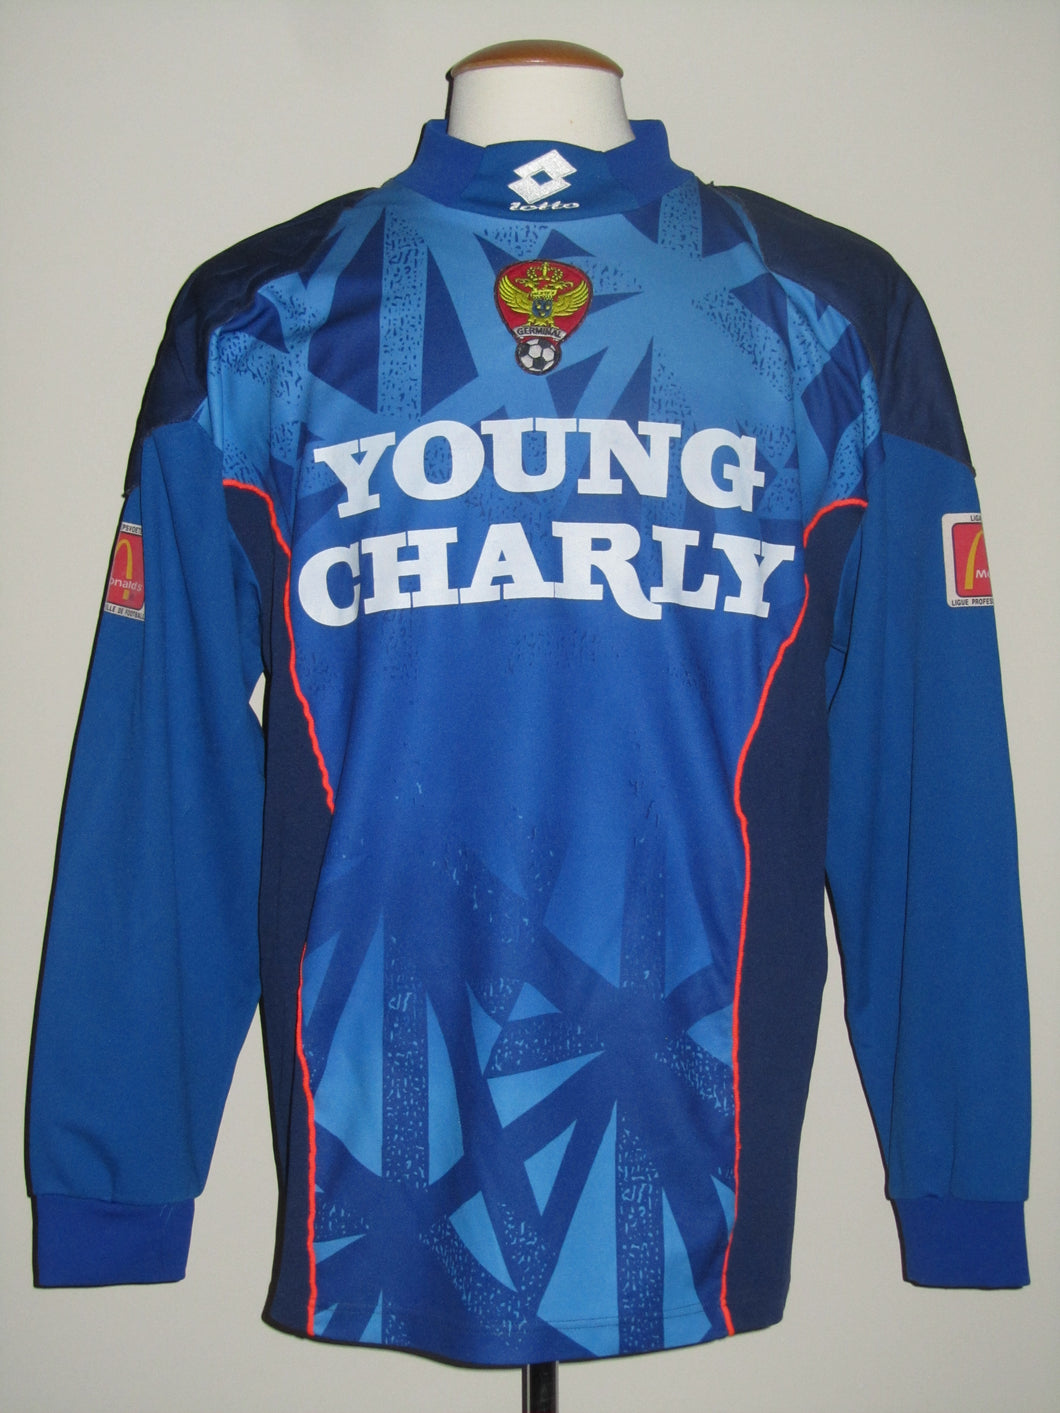 Germinal Ekeren 1995-97 Goal Keeper shirt MATCH ISSUE/WORN #1 Philippe Vande Walle